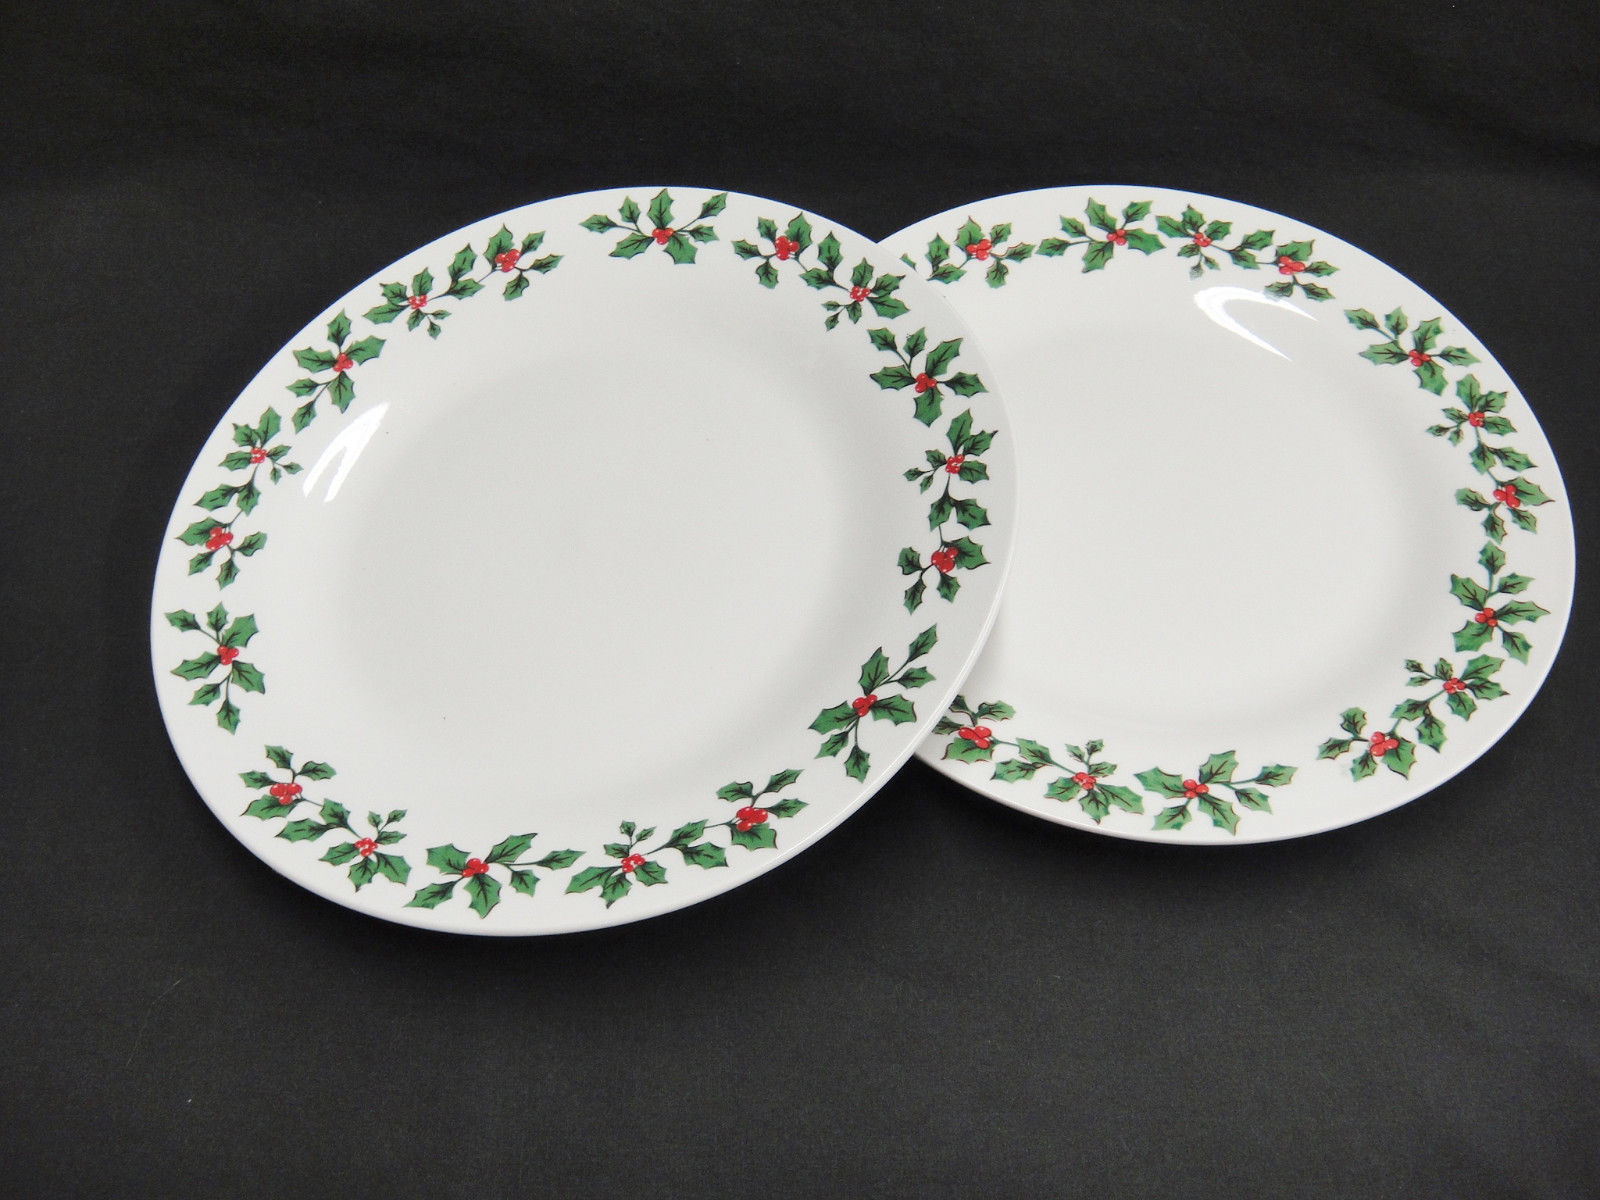 Royal Norfolk Christmas Dinner Plates 10.5  Holly Border Lot of 2 HTF - $24.74 & Royal Norfolk Dinner Plates: 1 listing